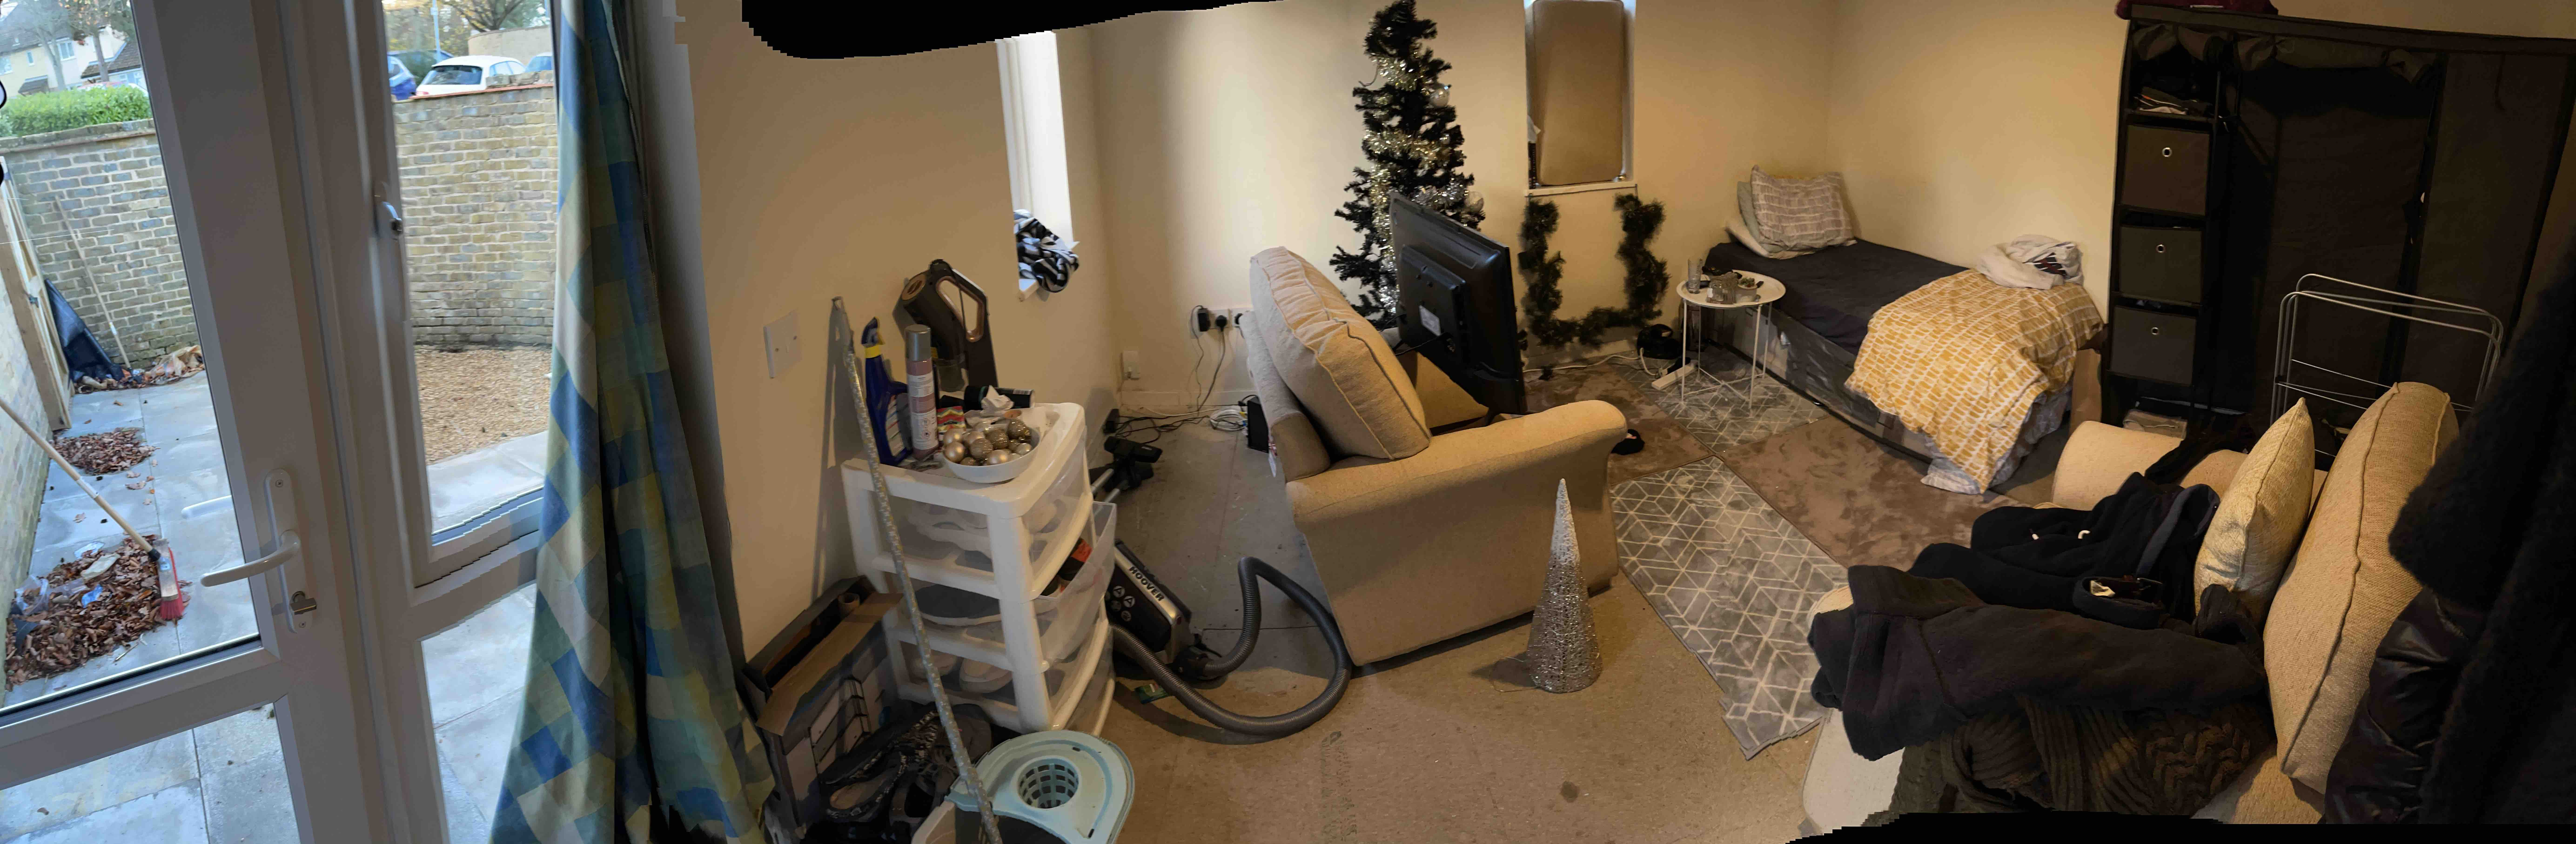 1 room in Great Billing, Northampton, NN3 5EZ RoomsLocal image